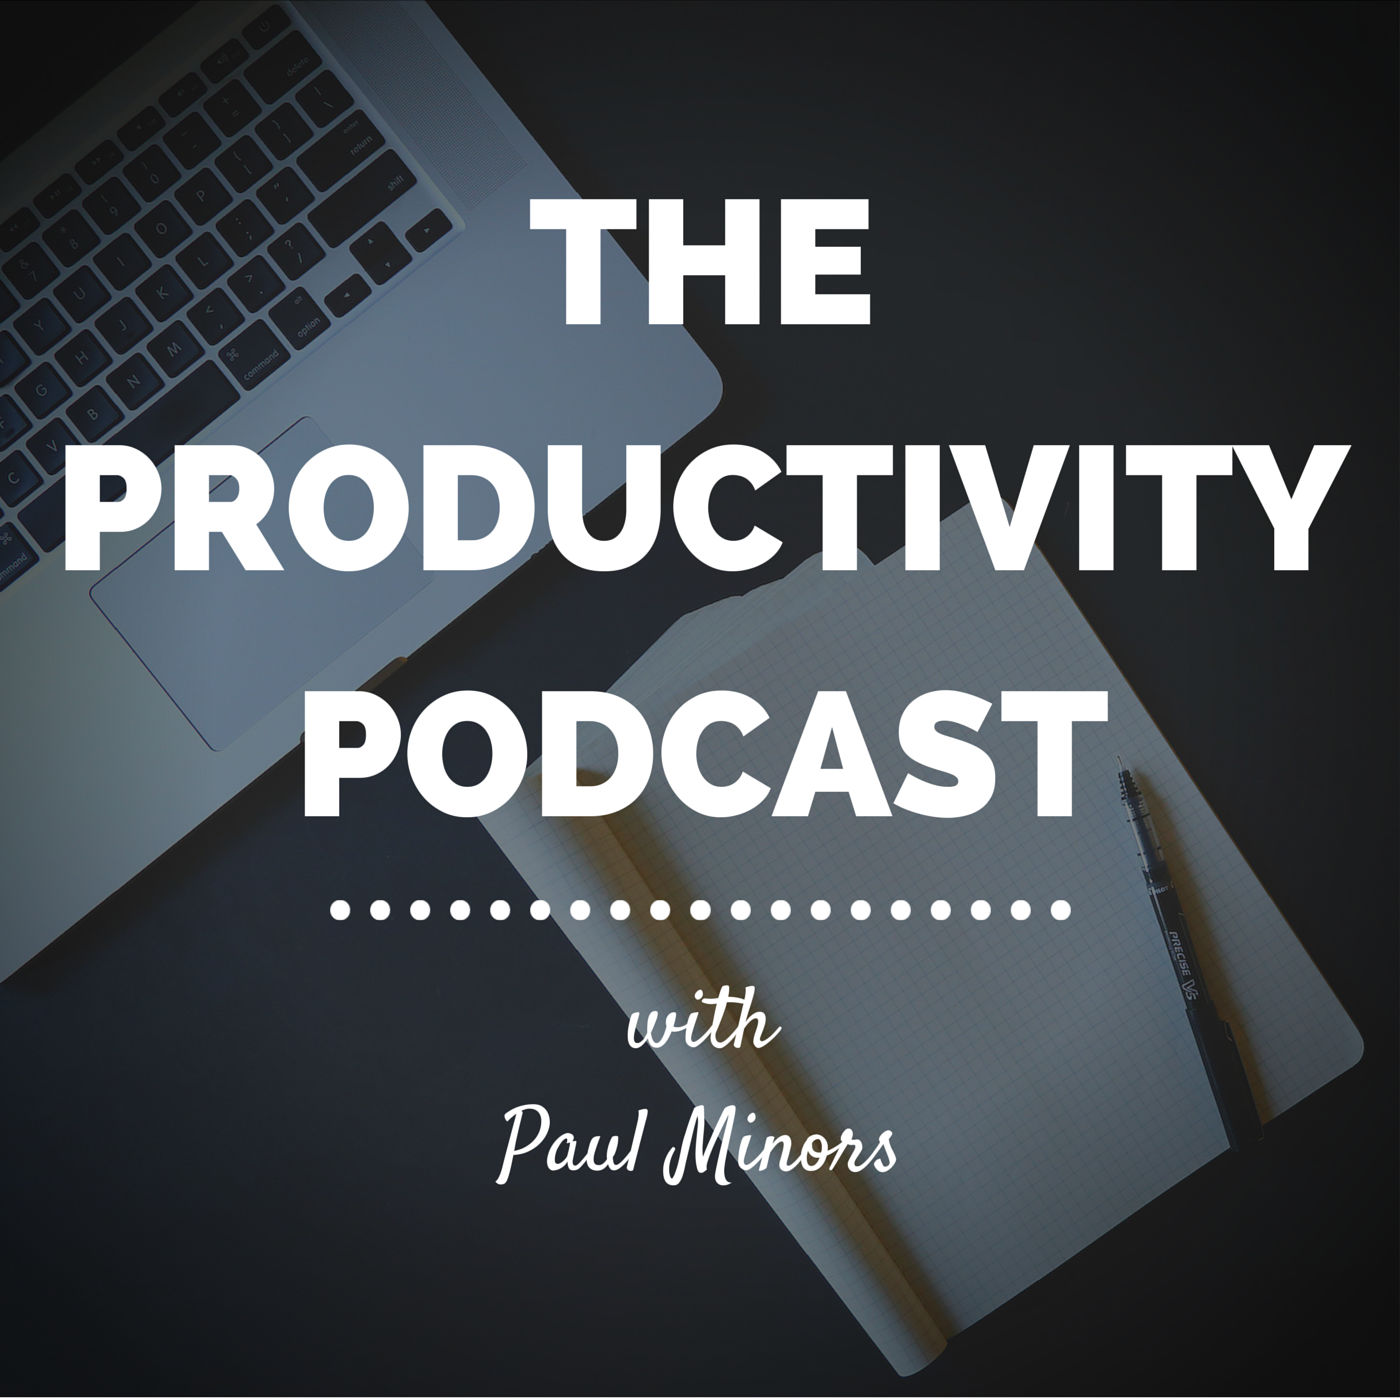 productivity podcast.jpg